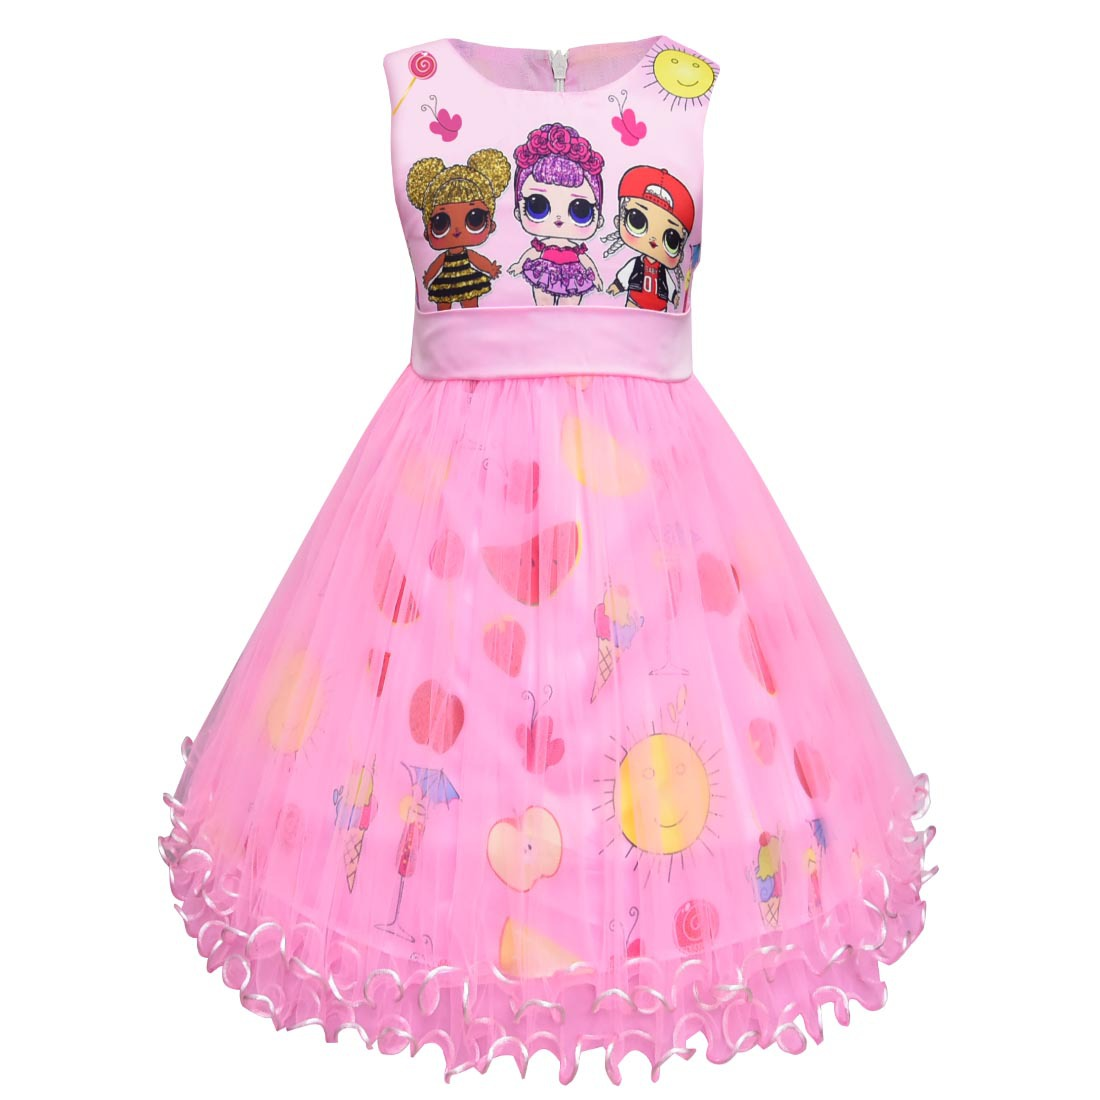 New sale Girl Princess Birthday Party Ruffle Mesh Kids Dresses For Ladybug LOL Tutu Dress For Girls Summer Dress Wedding clothes new summer dress sequined flowers bow kids dresses for girls clothes solid birthday party robe princess dress wedding vestido